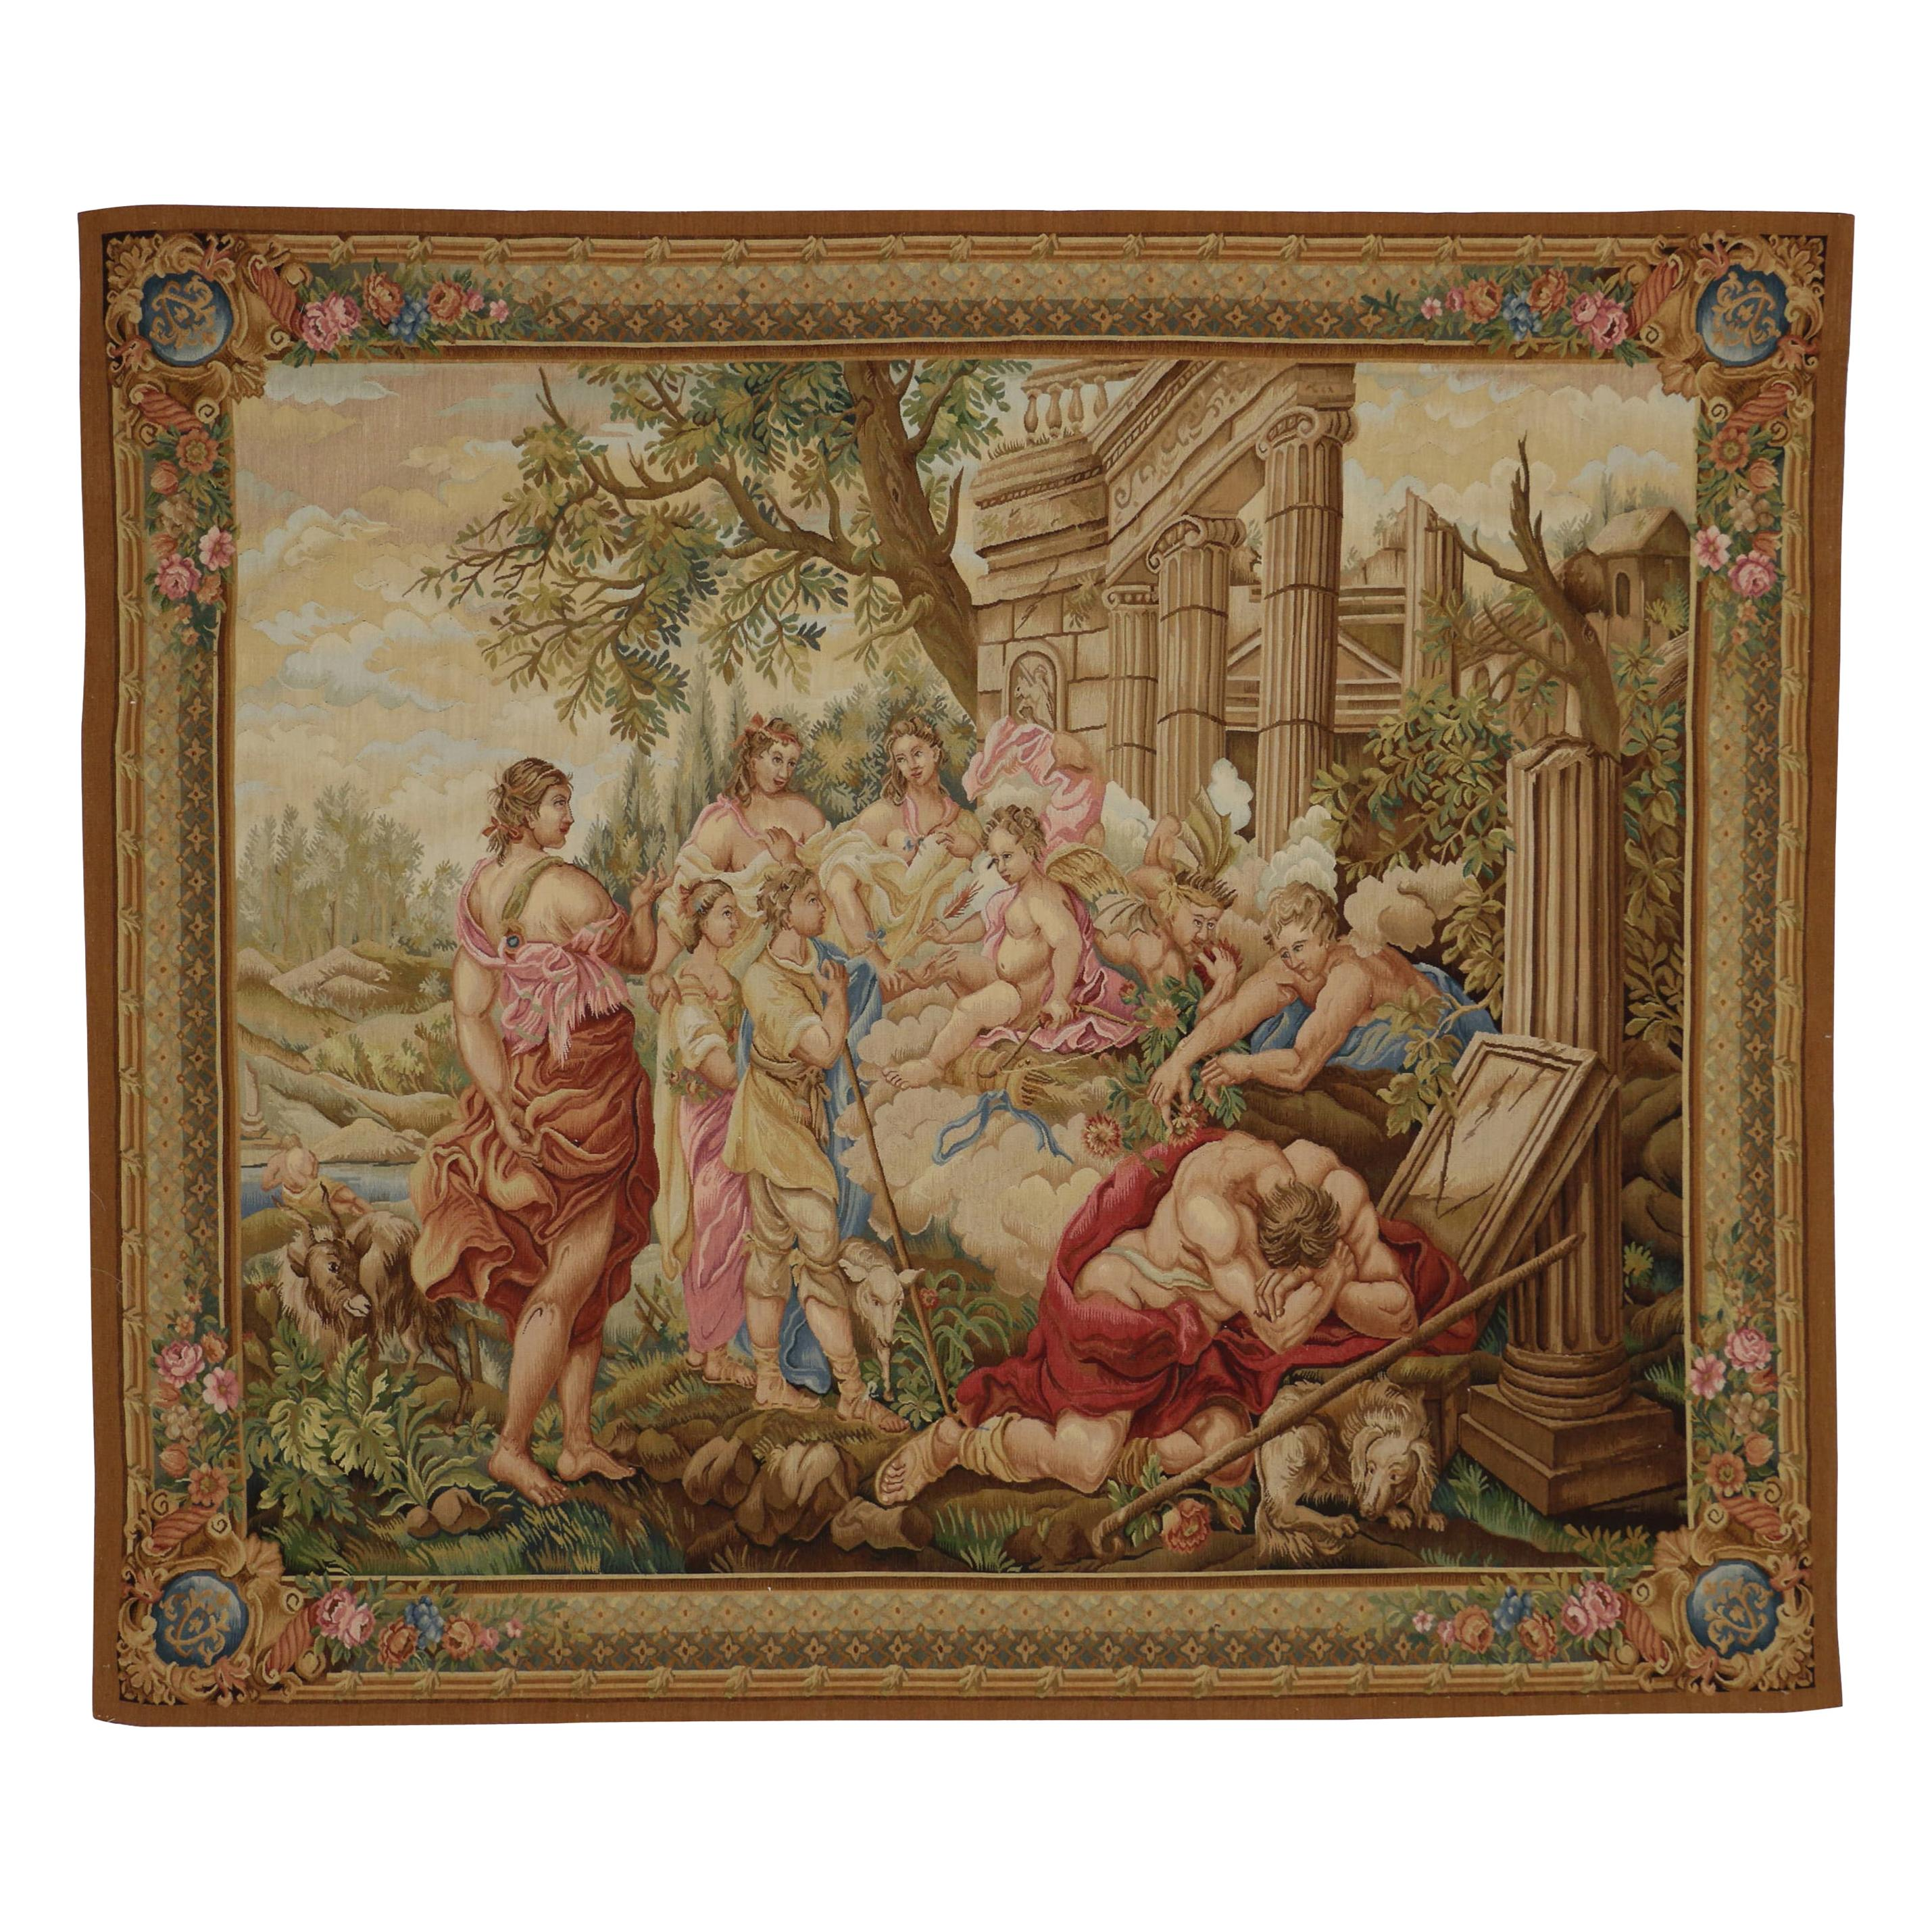 Louis XVI French Rococo Mythology Style Beauvais Tapestry after Francois Boucher